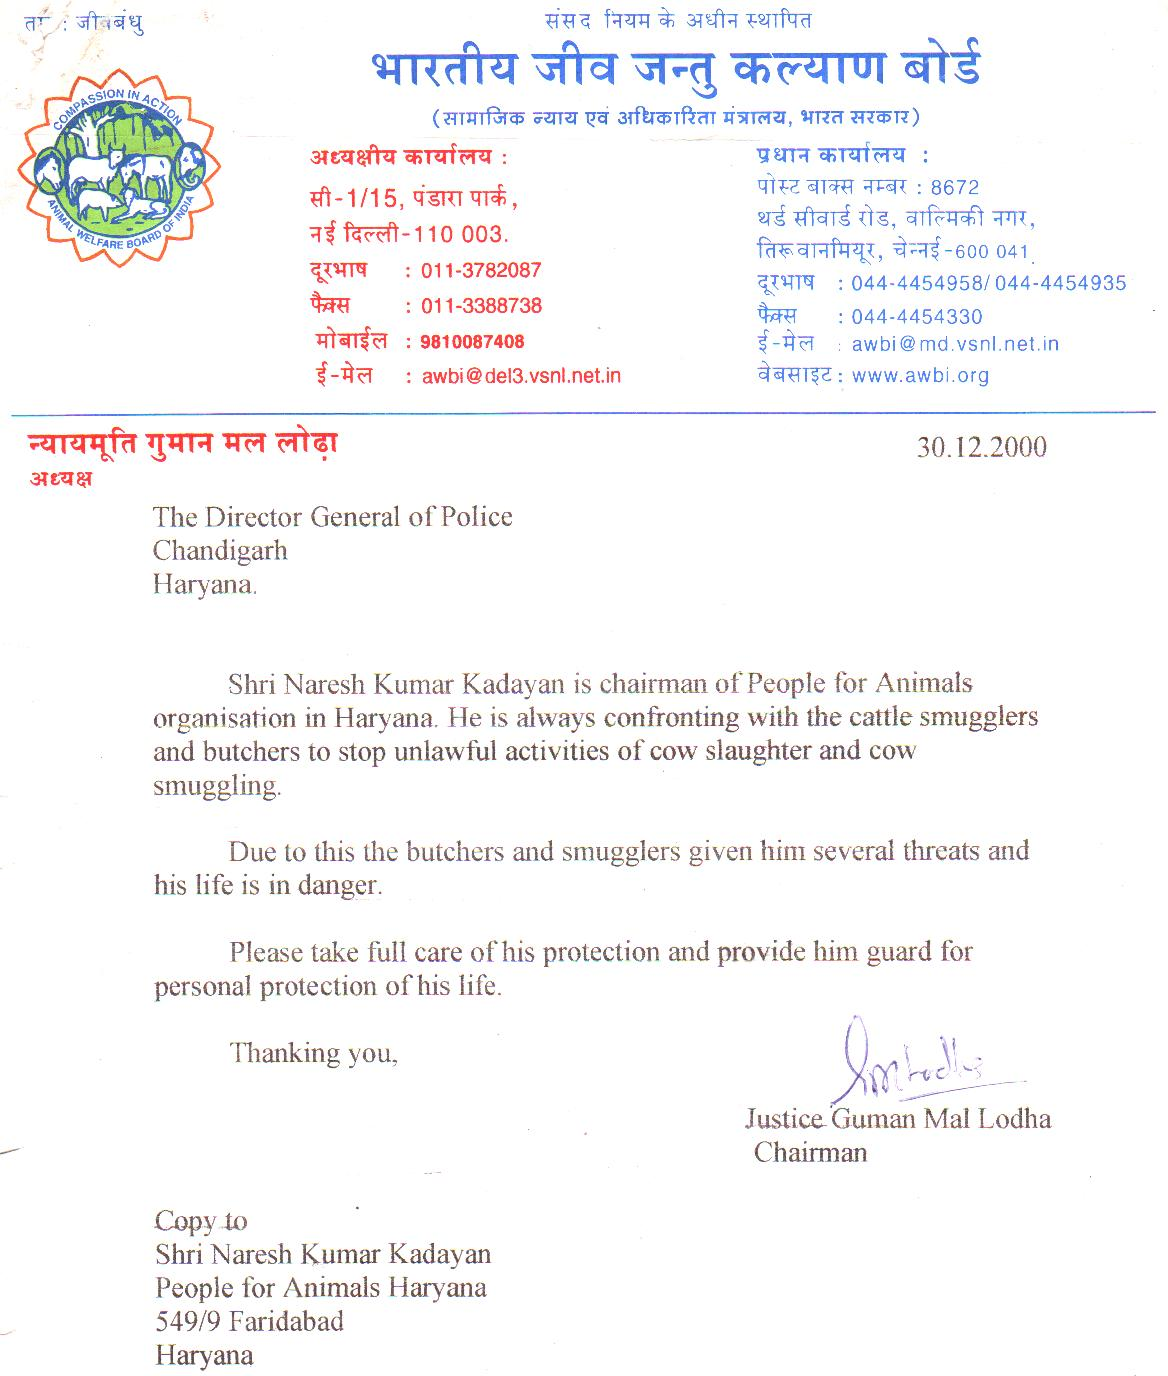 JUSTICE LODHA - CHAIRMAN, AWBI WROTE LETTER TO DGP